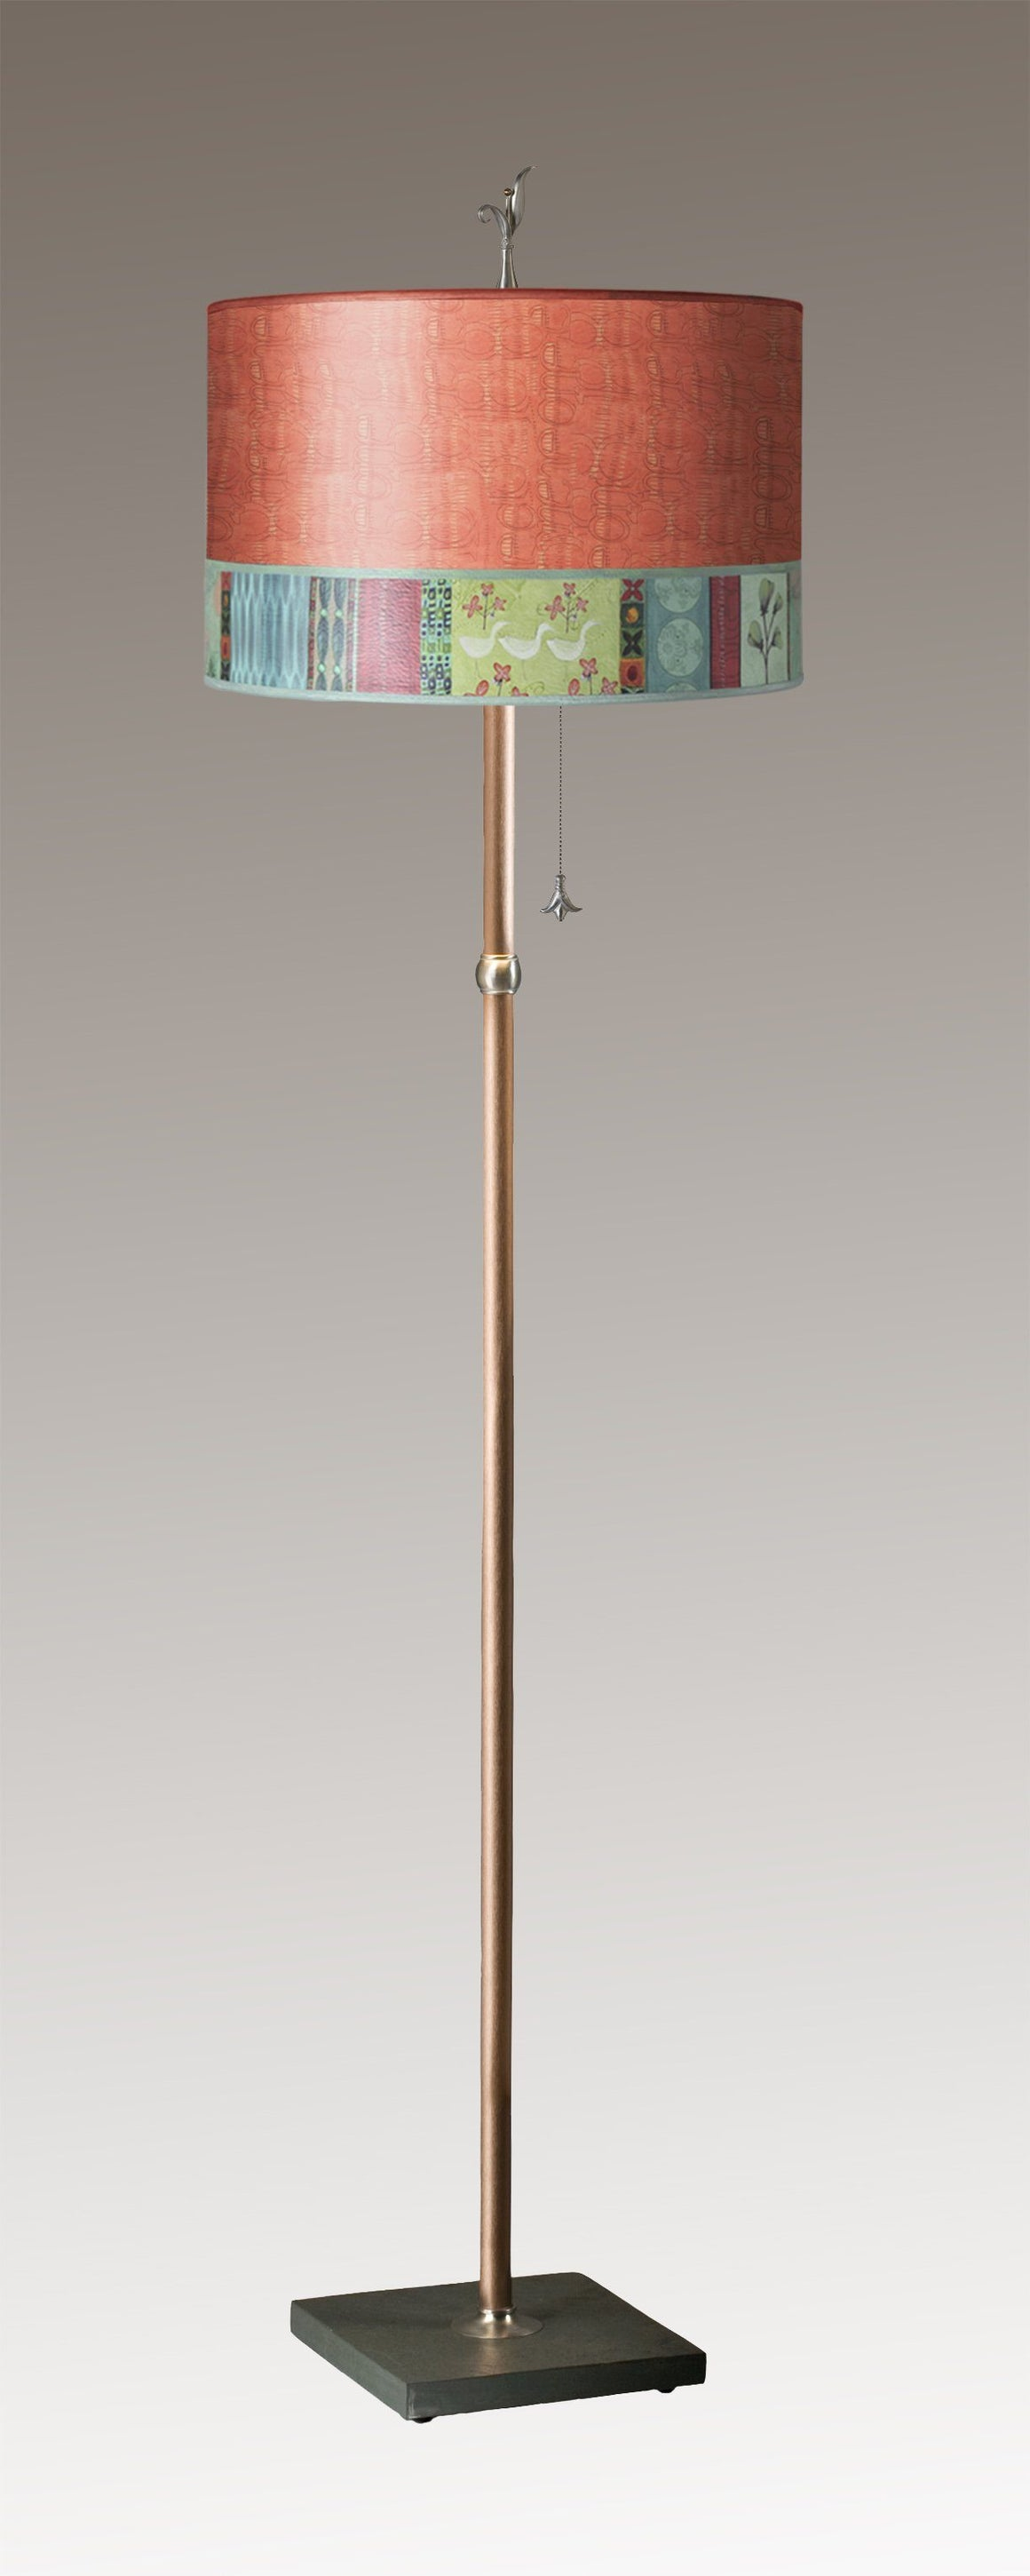 Copper Floor Lamp on Vermont Slate with Large Drum Lampshade in Melody in Coral